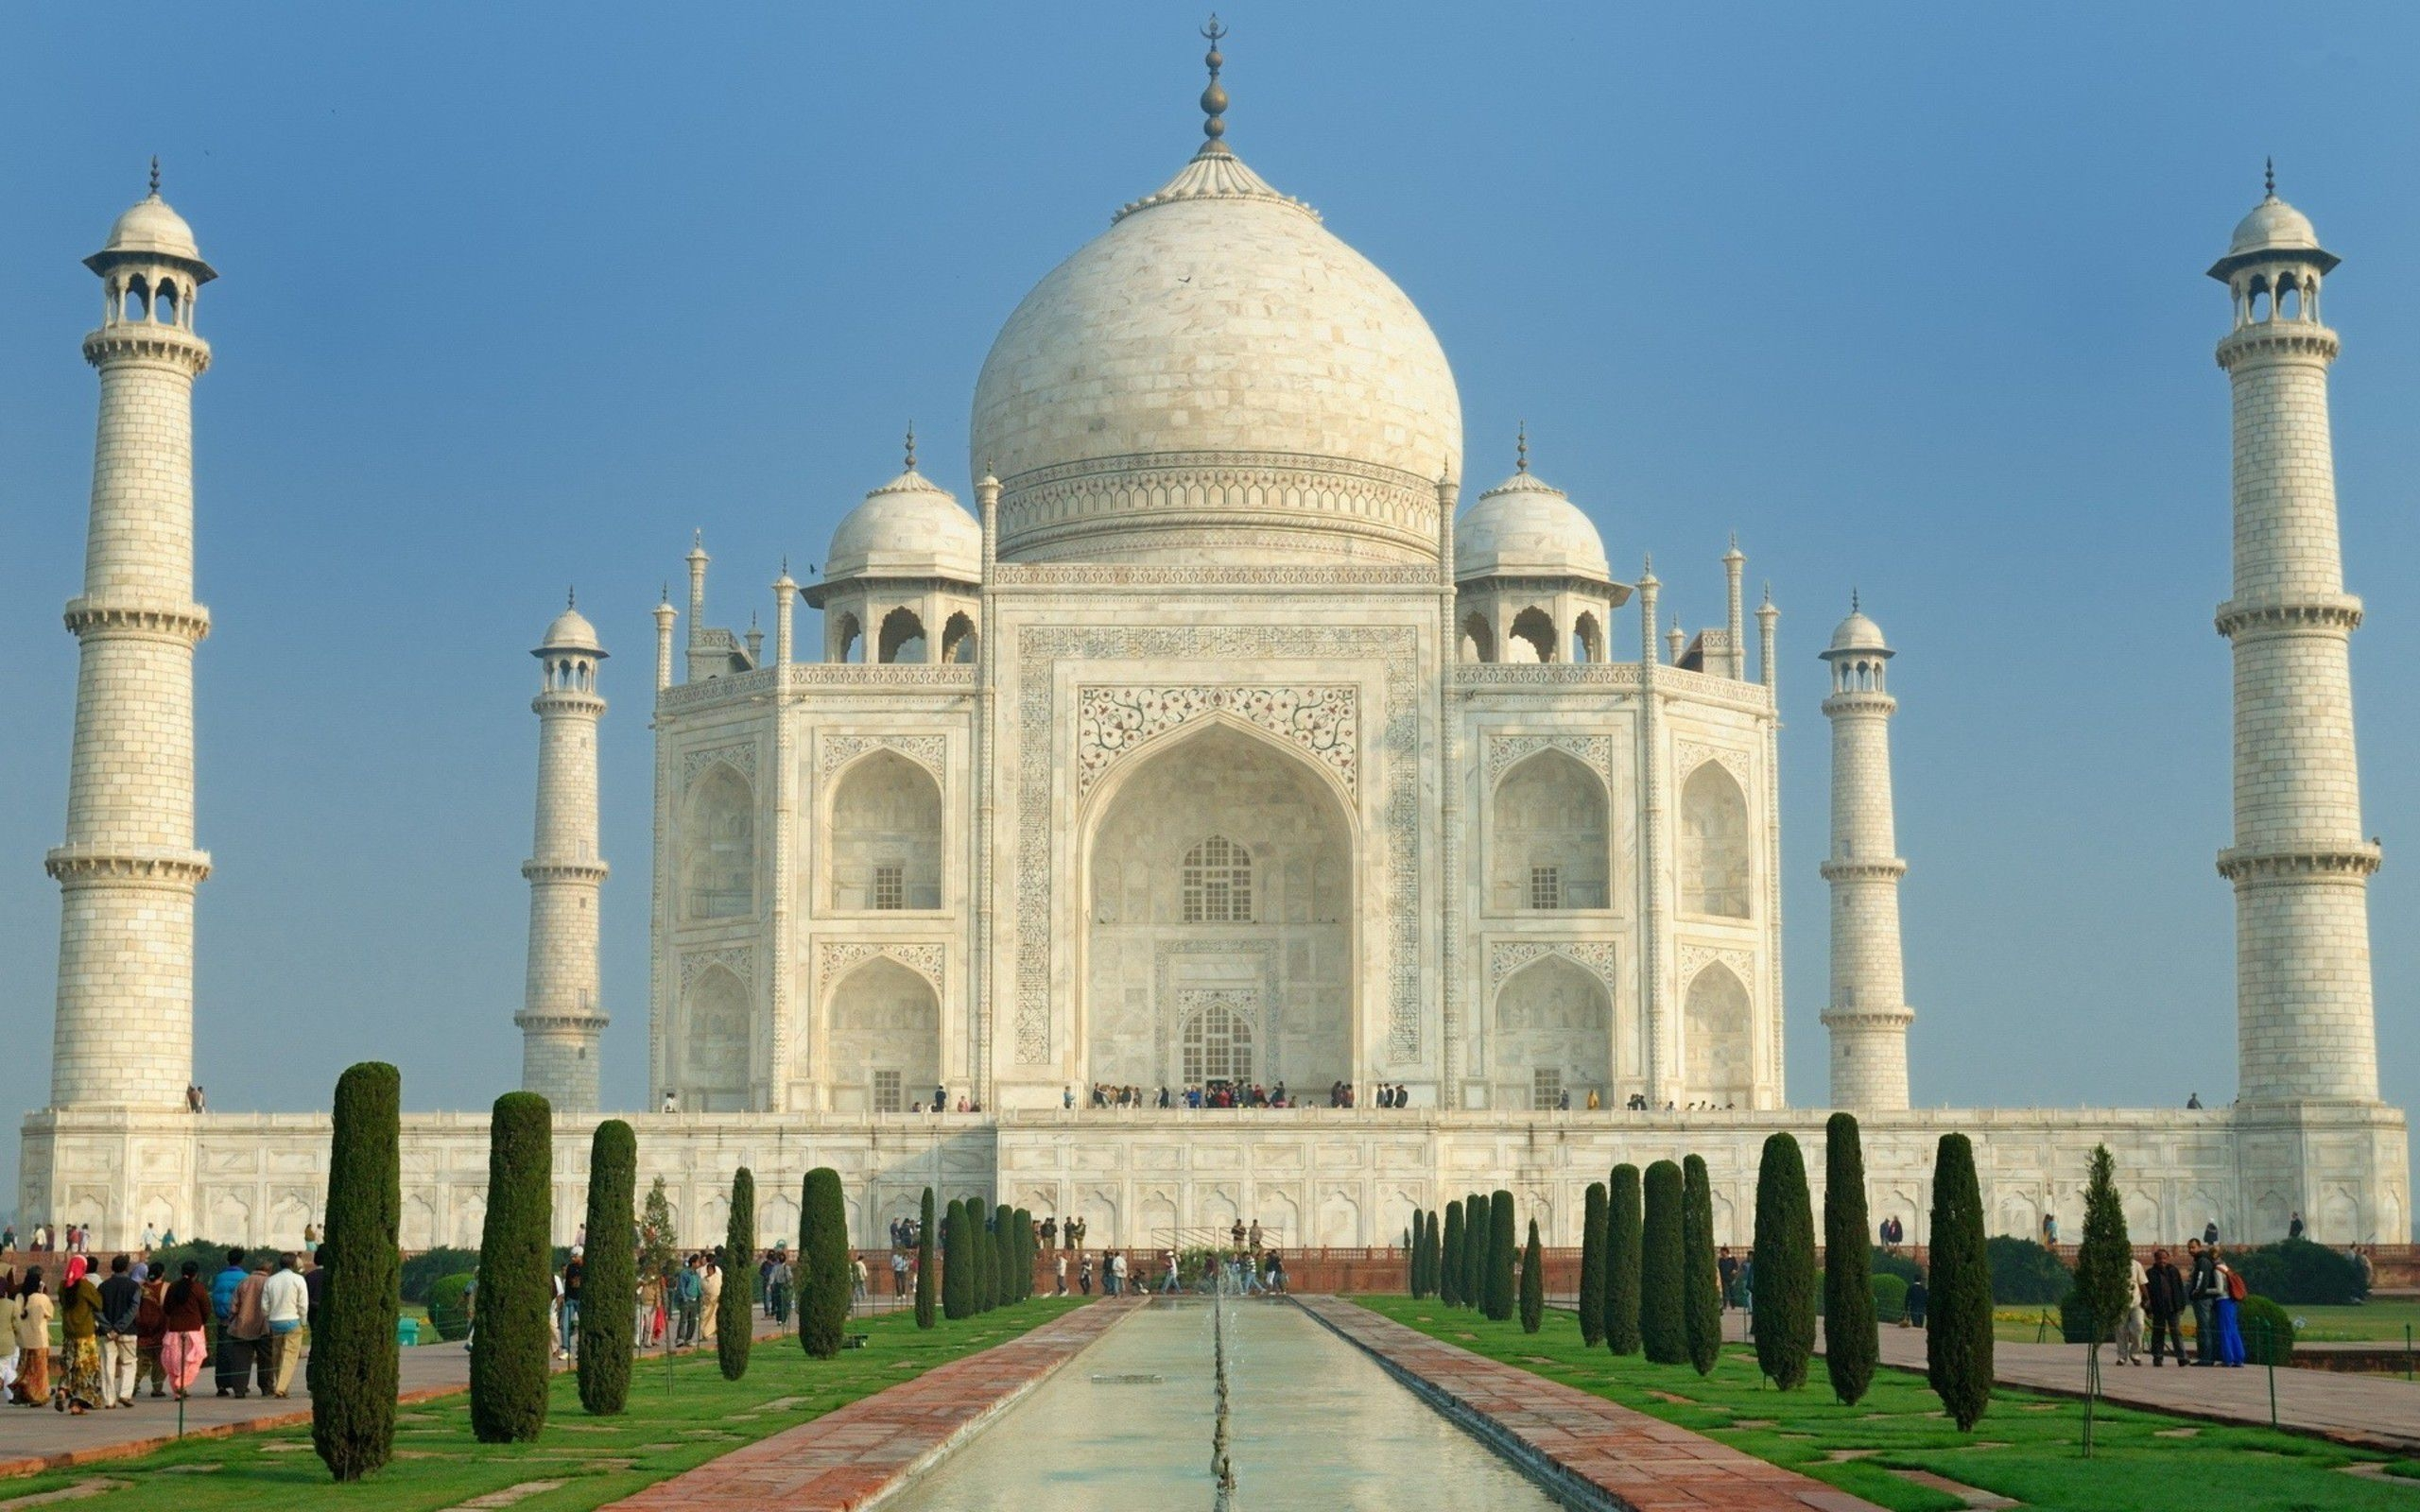 Delhi Agra Jaipur Tour package - 5 Star Luxury Package 2019-2020 - New  Sites Covered